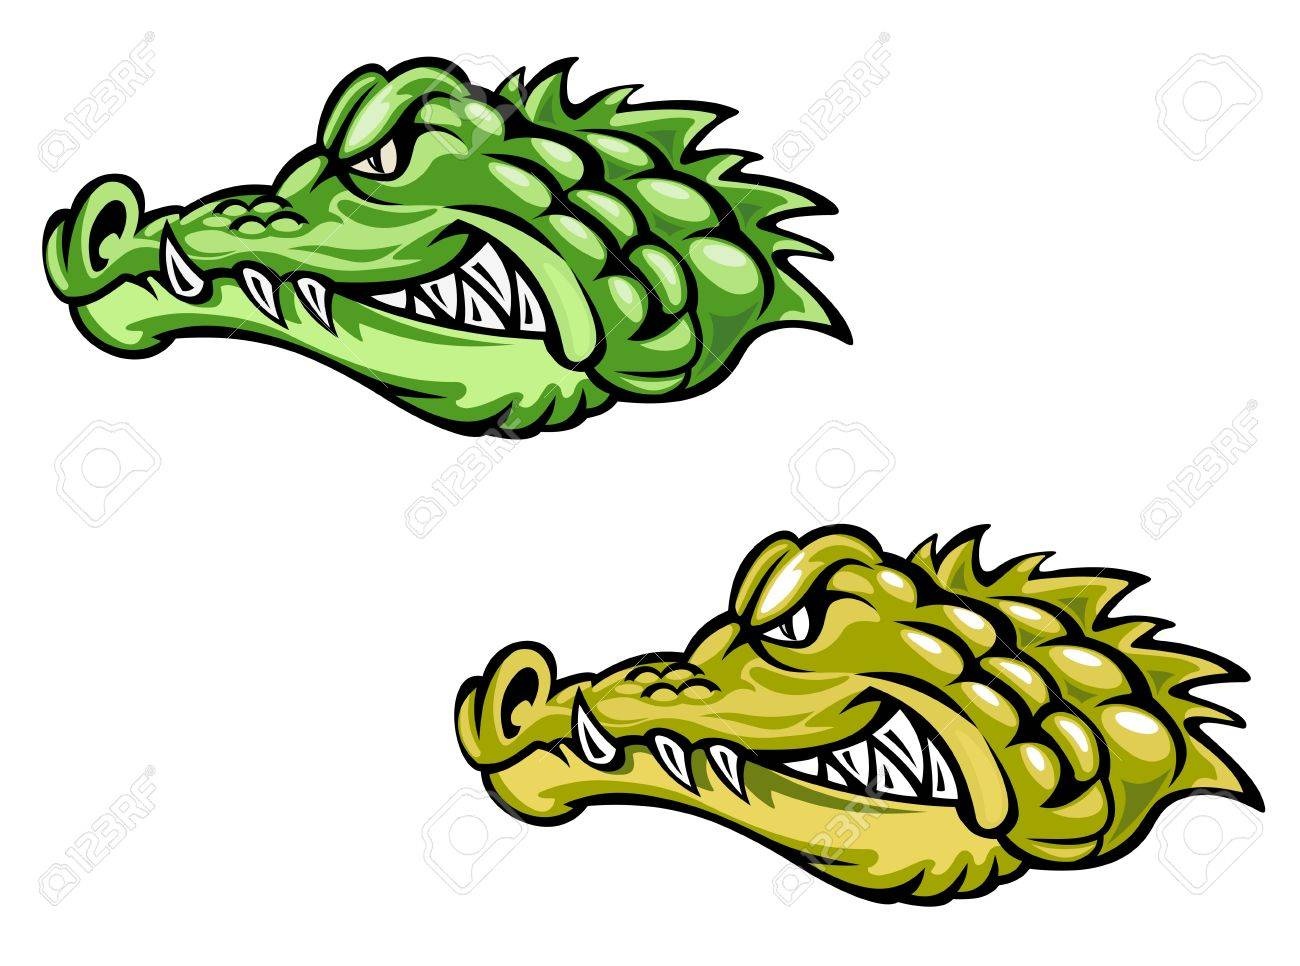 Alligator Cartoon Image